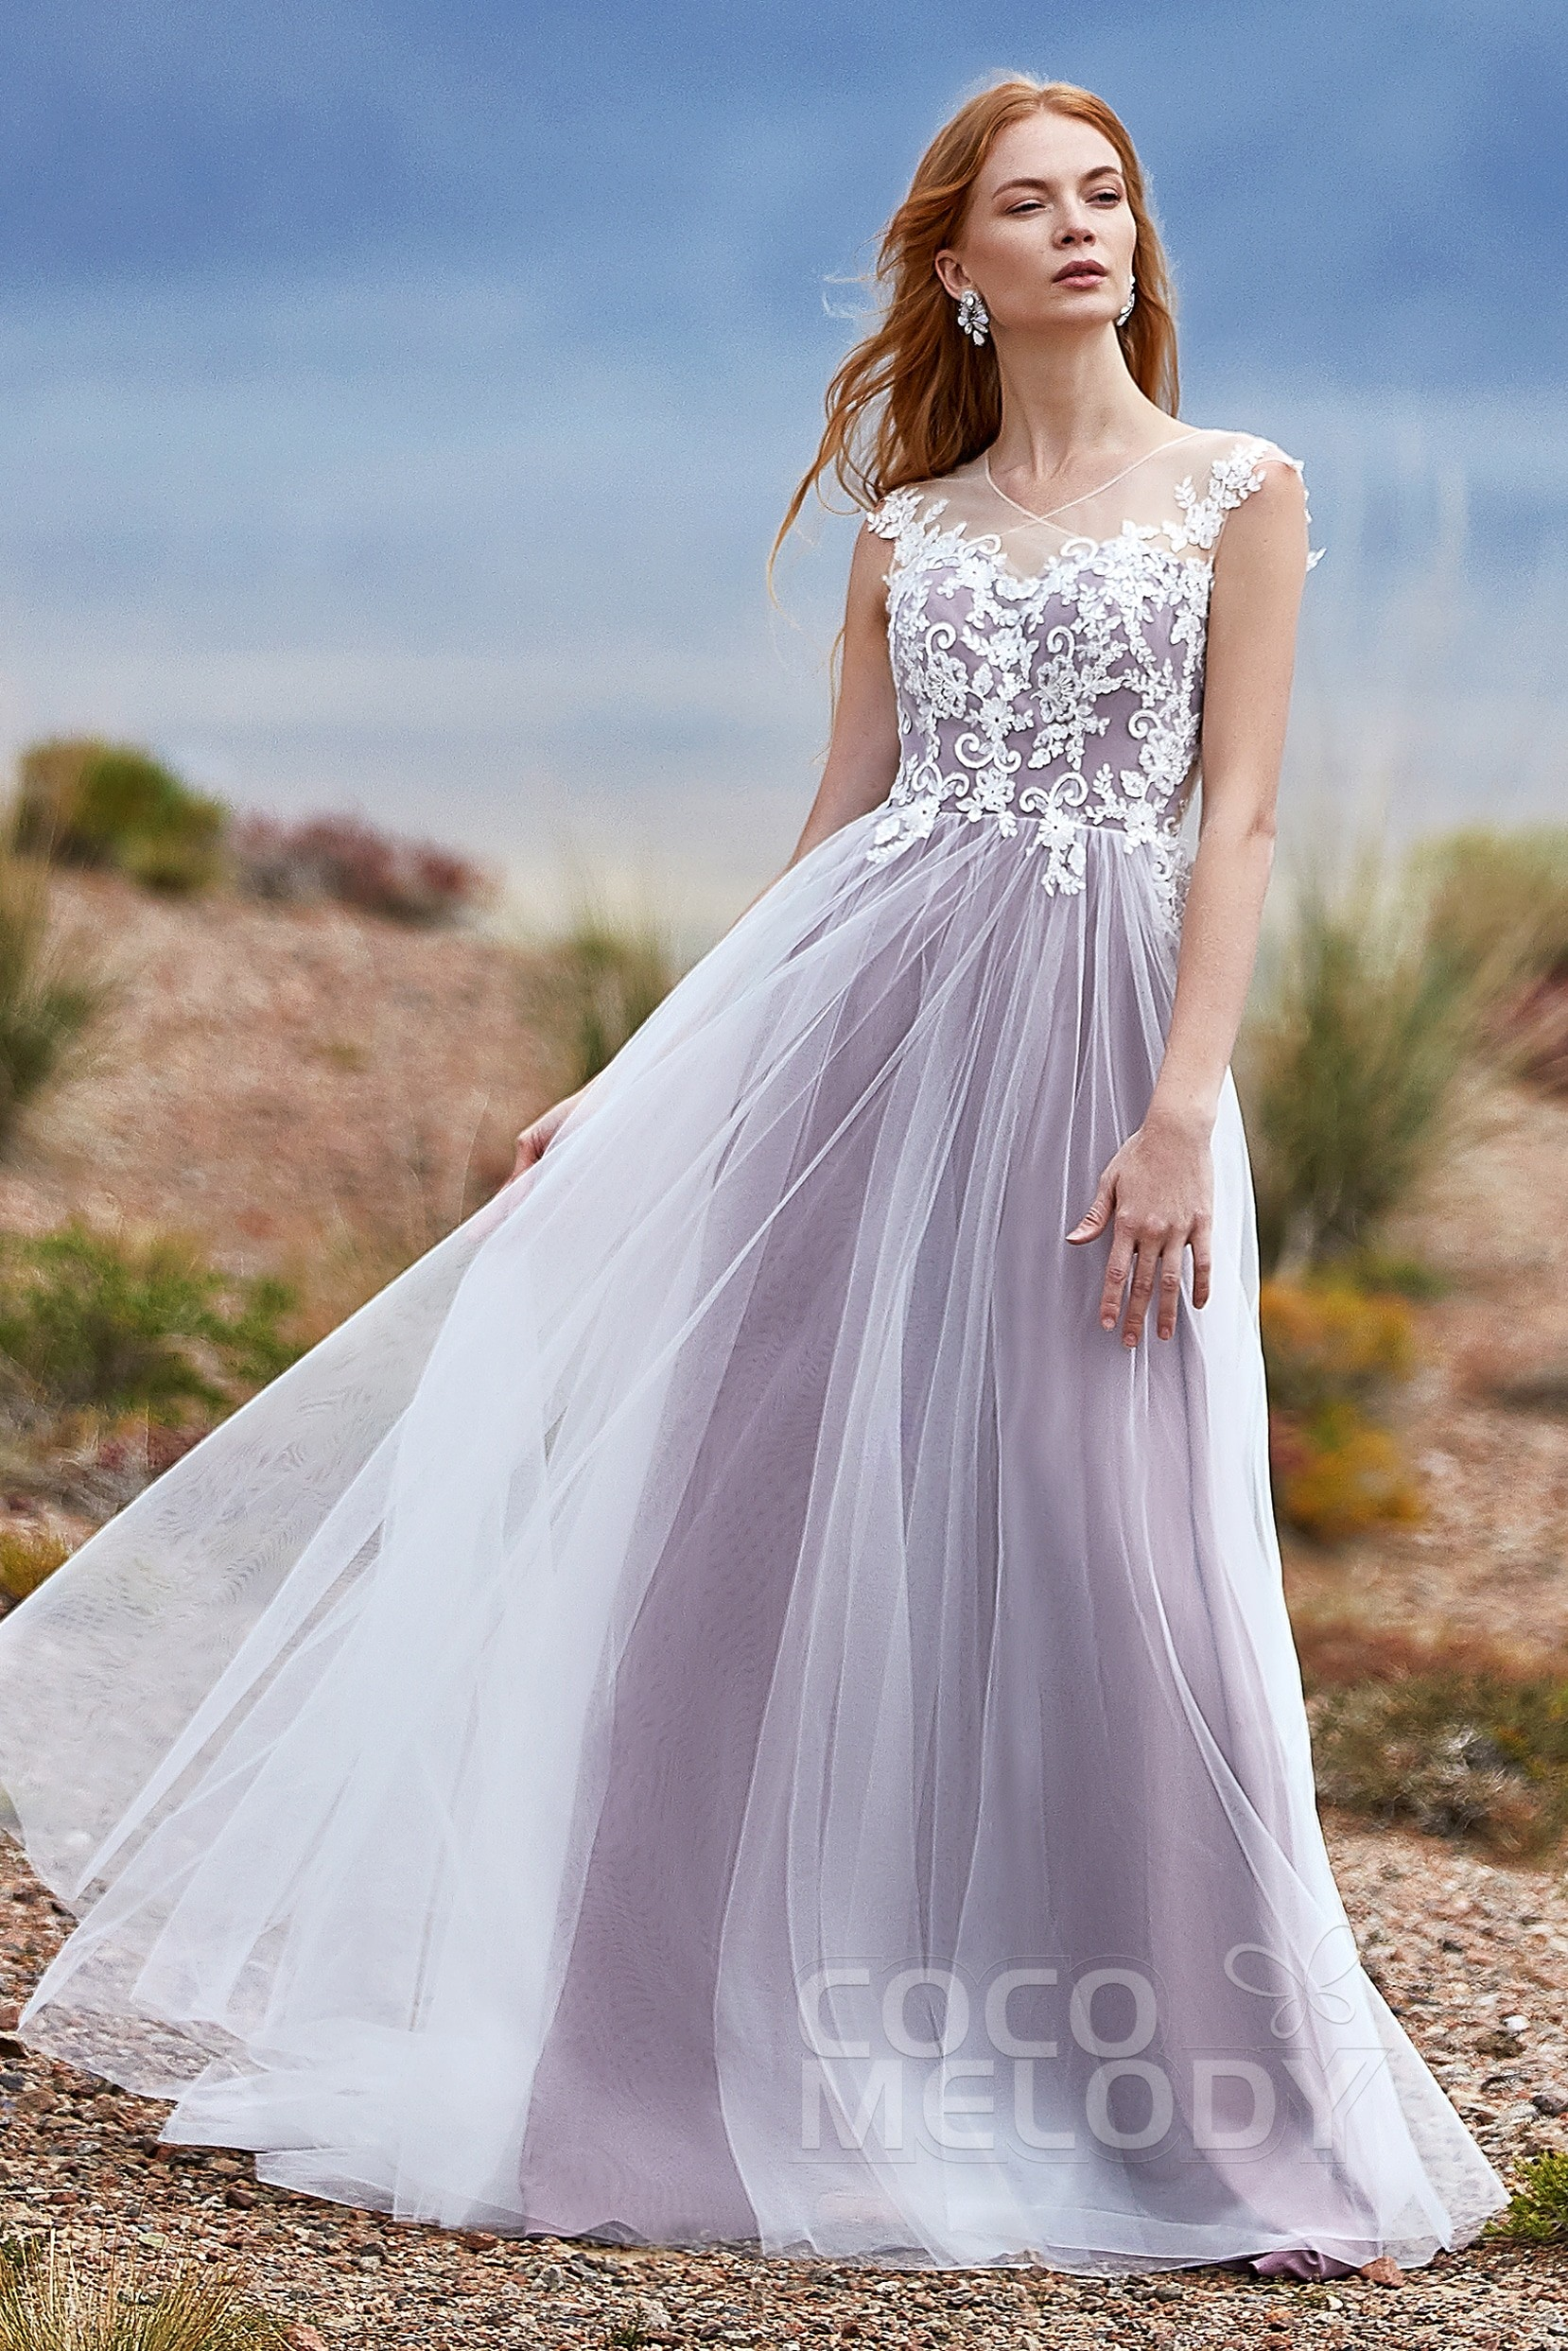 255f441c416d A-Line Natural Tulle Sleeveless Wedding Dress LD5846 | Cocomelody